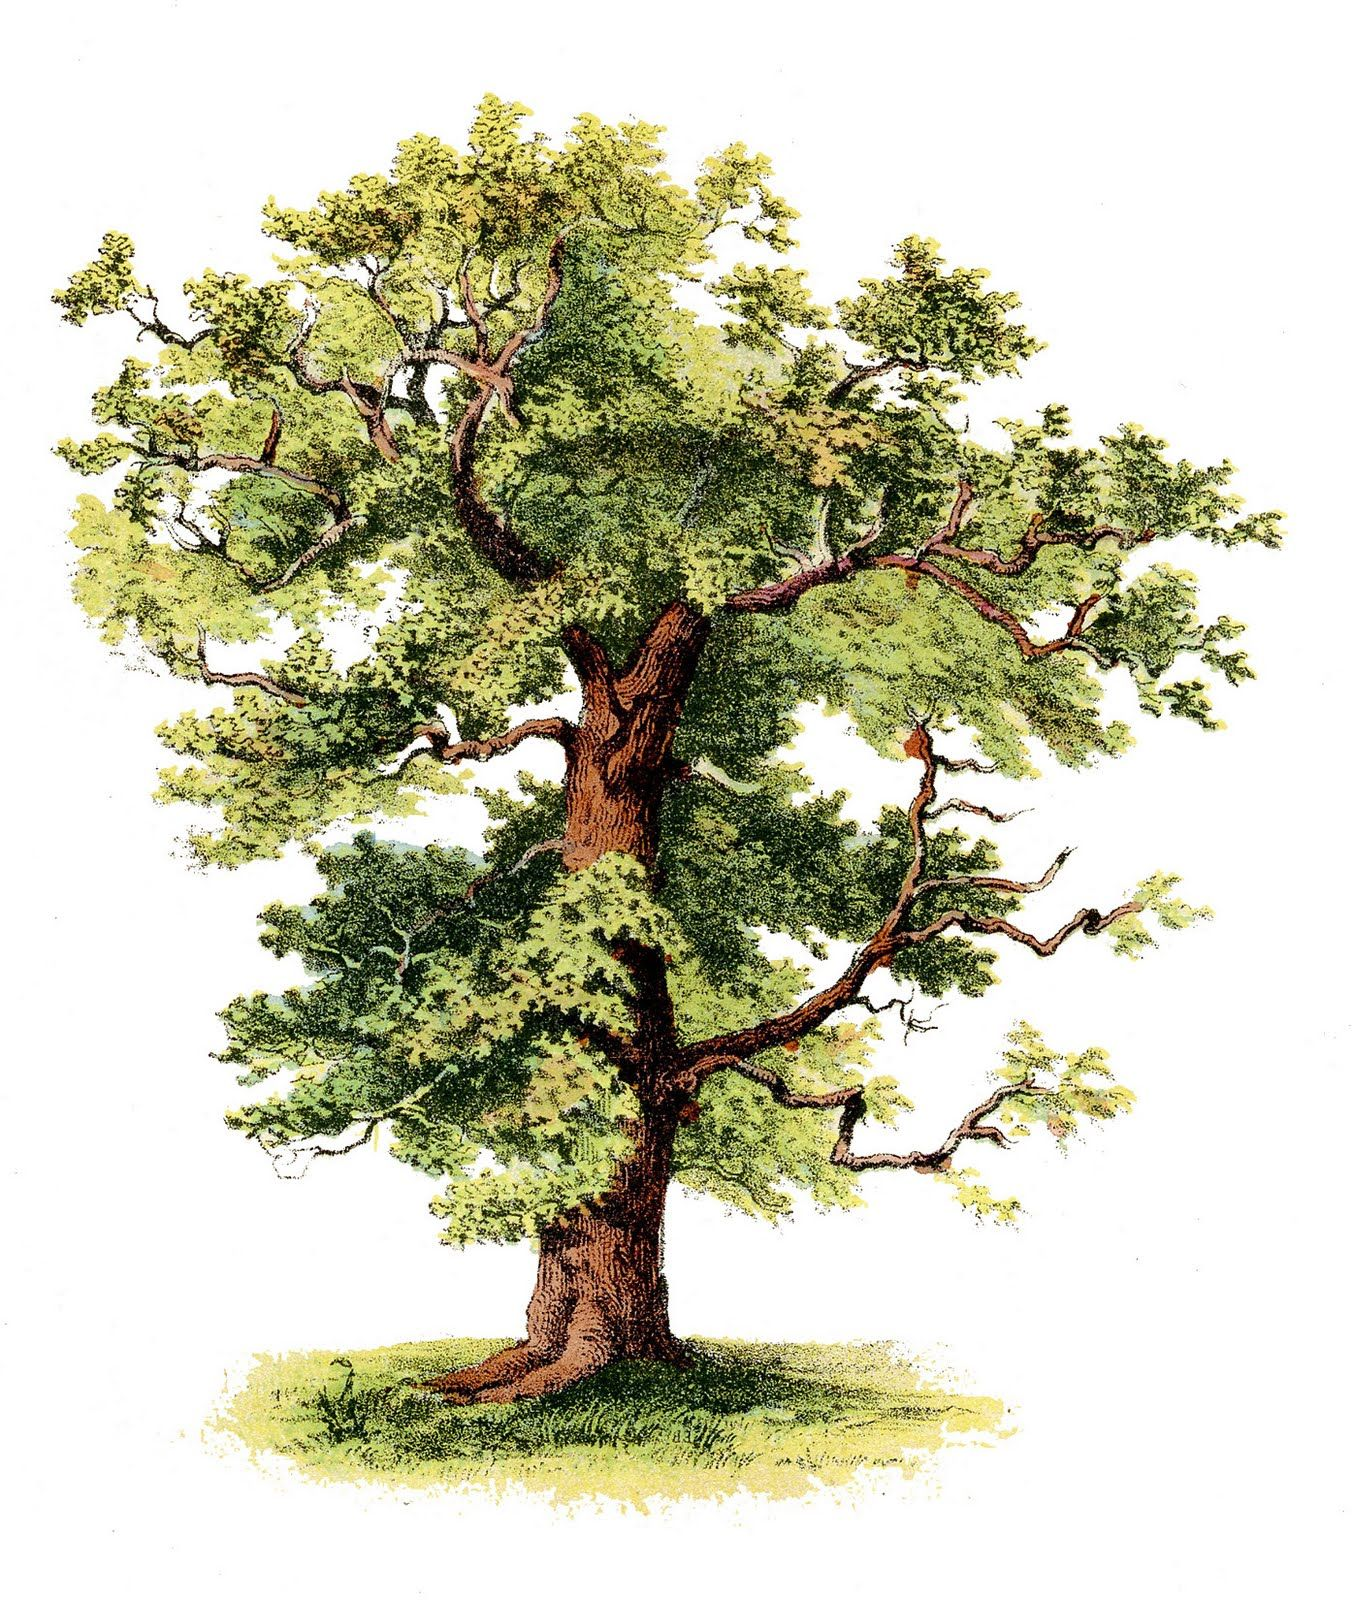 Tree illustrations clipart png royalty free stock Antique Clip Art - Beautiful Tree | Botanical Illustration ... png royalty free stock